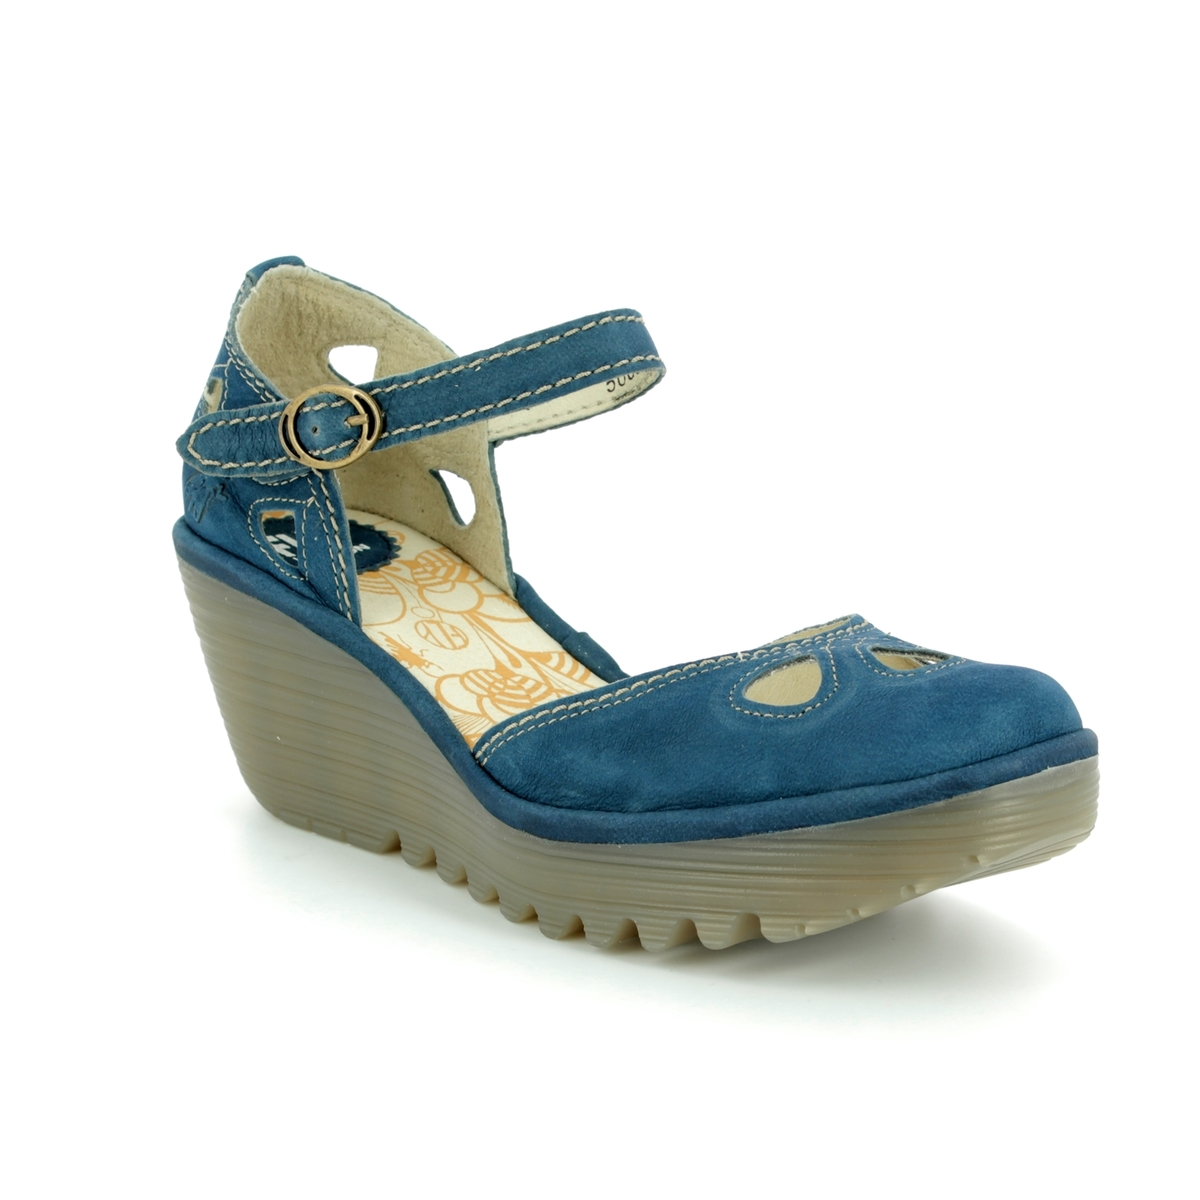 4422c2a18dc67 Fly London Wedge Shoes - Blue - P500016 YUNA